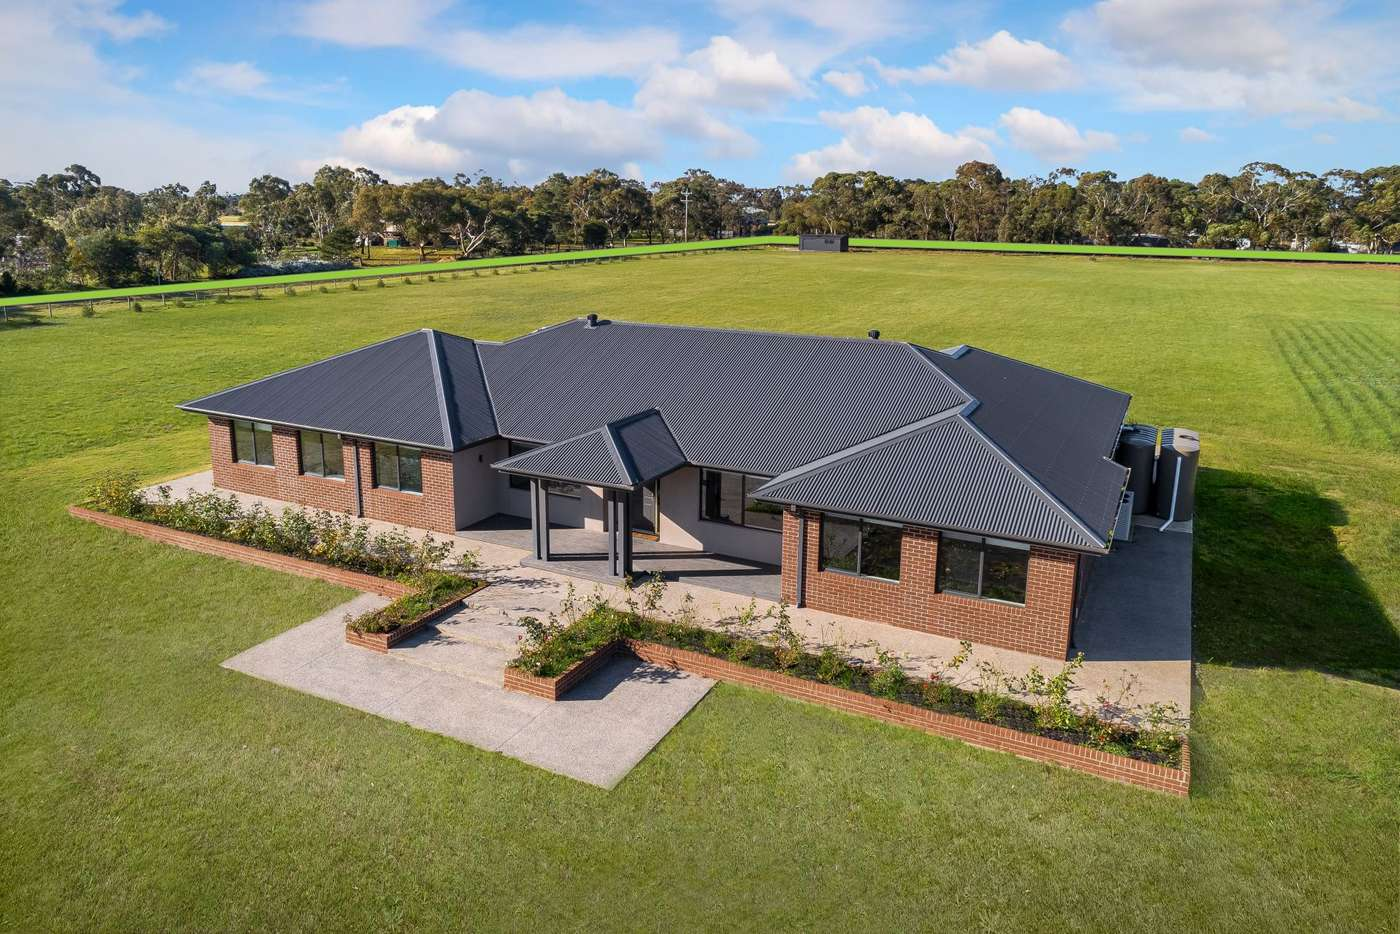 Main view of Homely house listing, 110 Minns Road, Little River VIC 3211